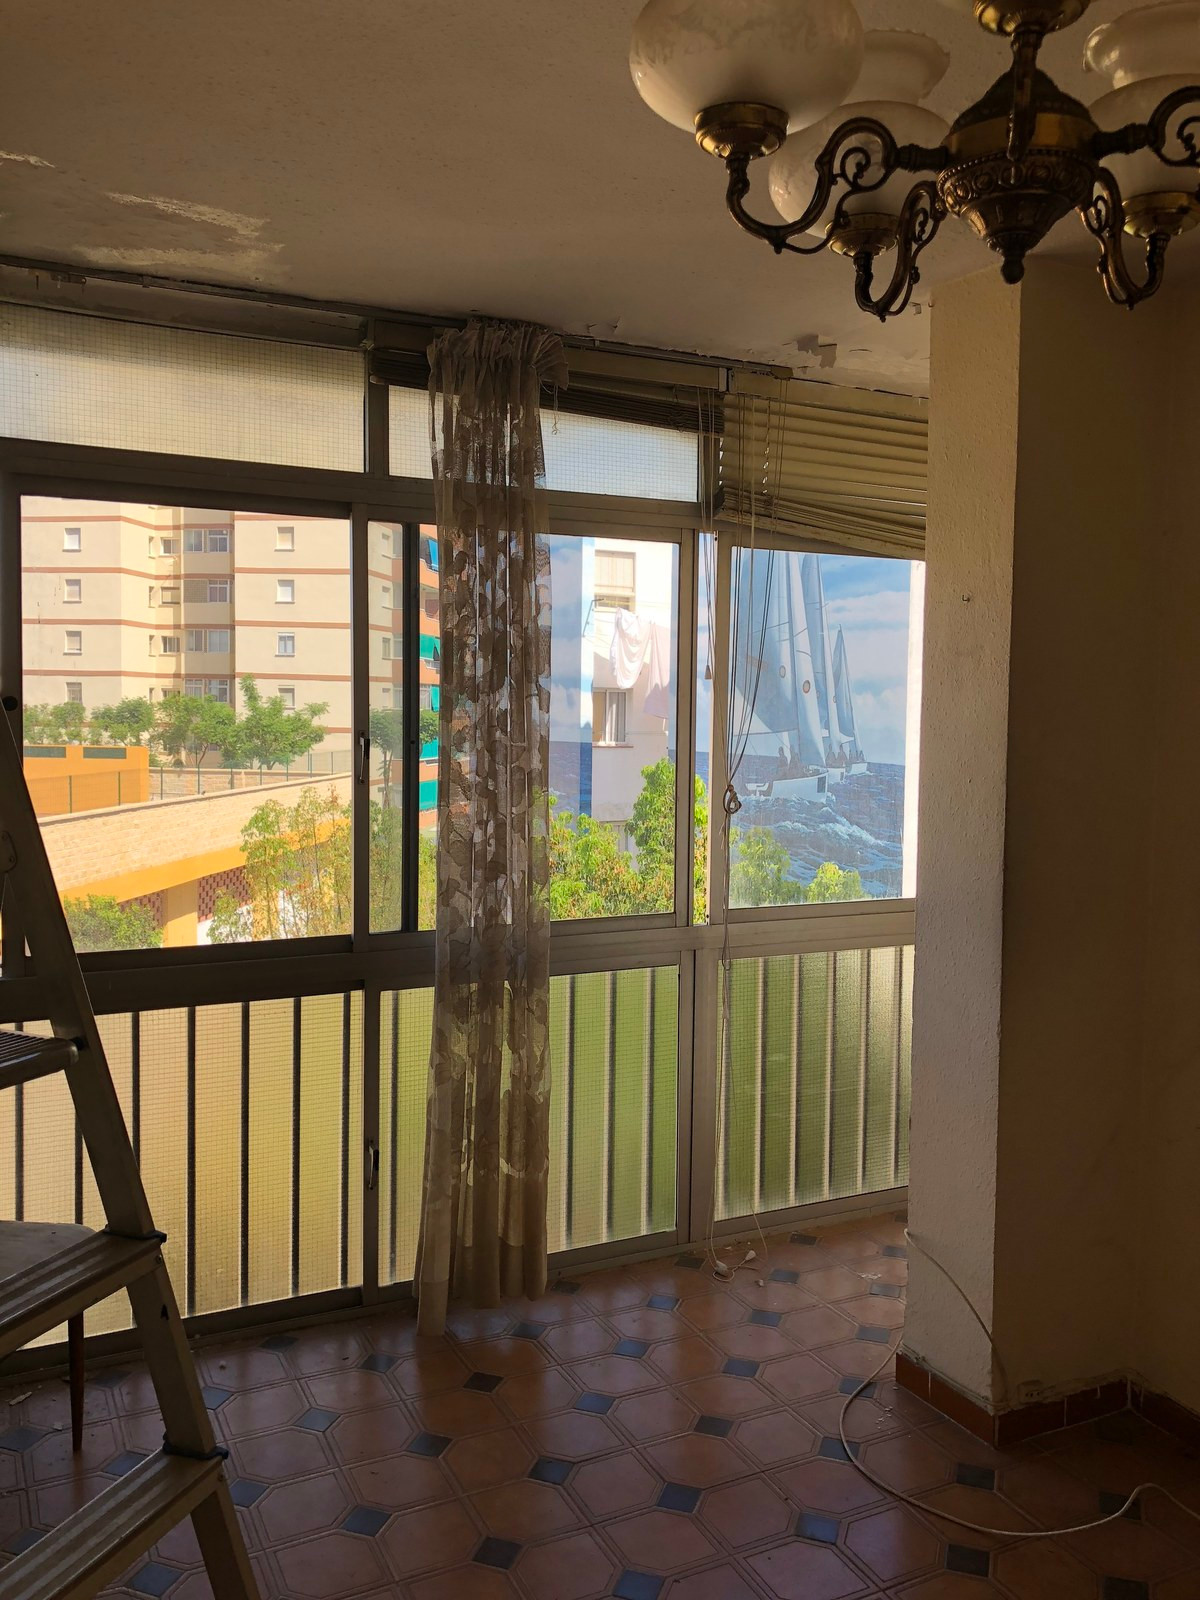 R3218941: Apartment for sale in Fuengirola